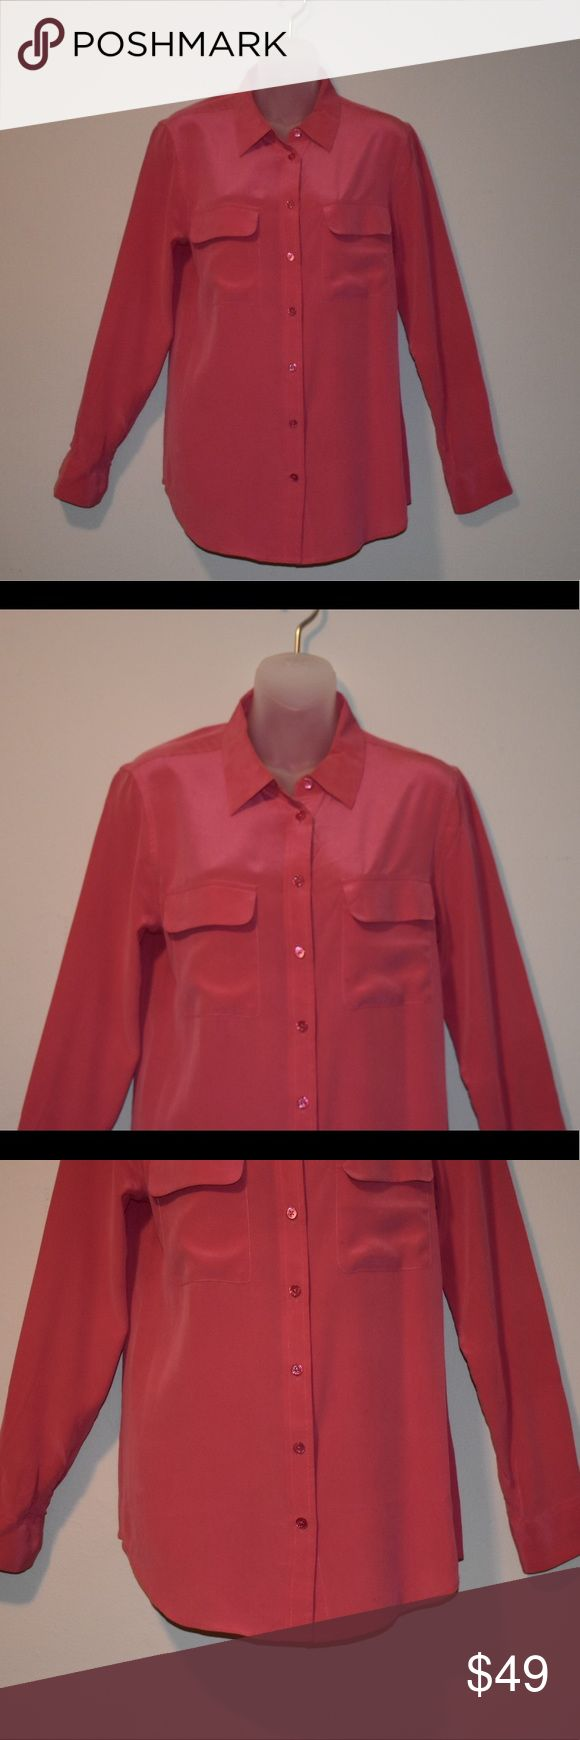 Equipment Slim Signature Silk Blouse 100% Silk. Beautiful color - almost like a dark salmon pink color. Only worn twice and dry cleaned both times. In perfect condition with the exception of a tiny tiny mark on the front pocket. Unnoticeable when worn. Equipment Tops Blouses